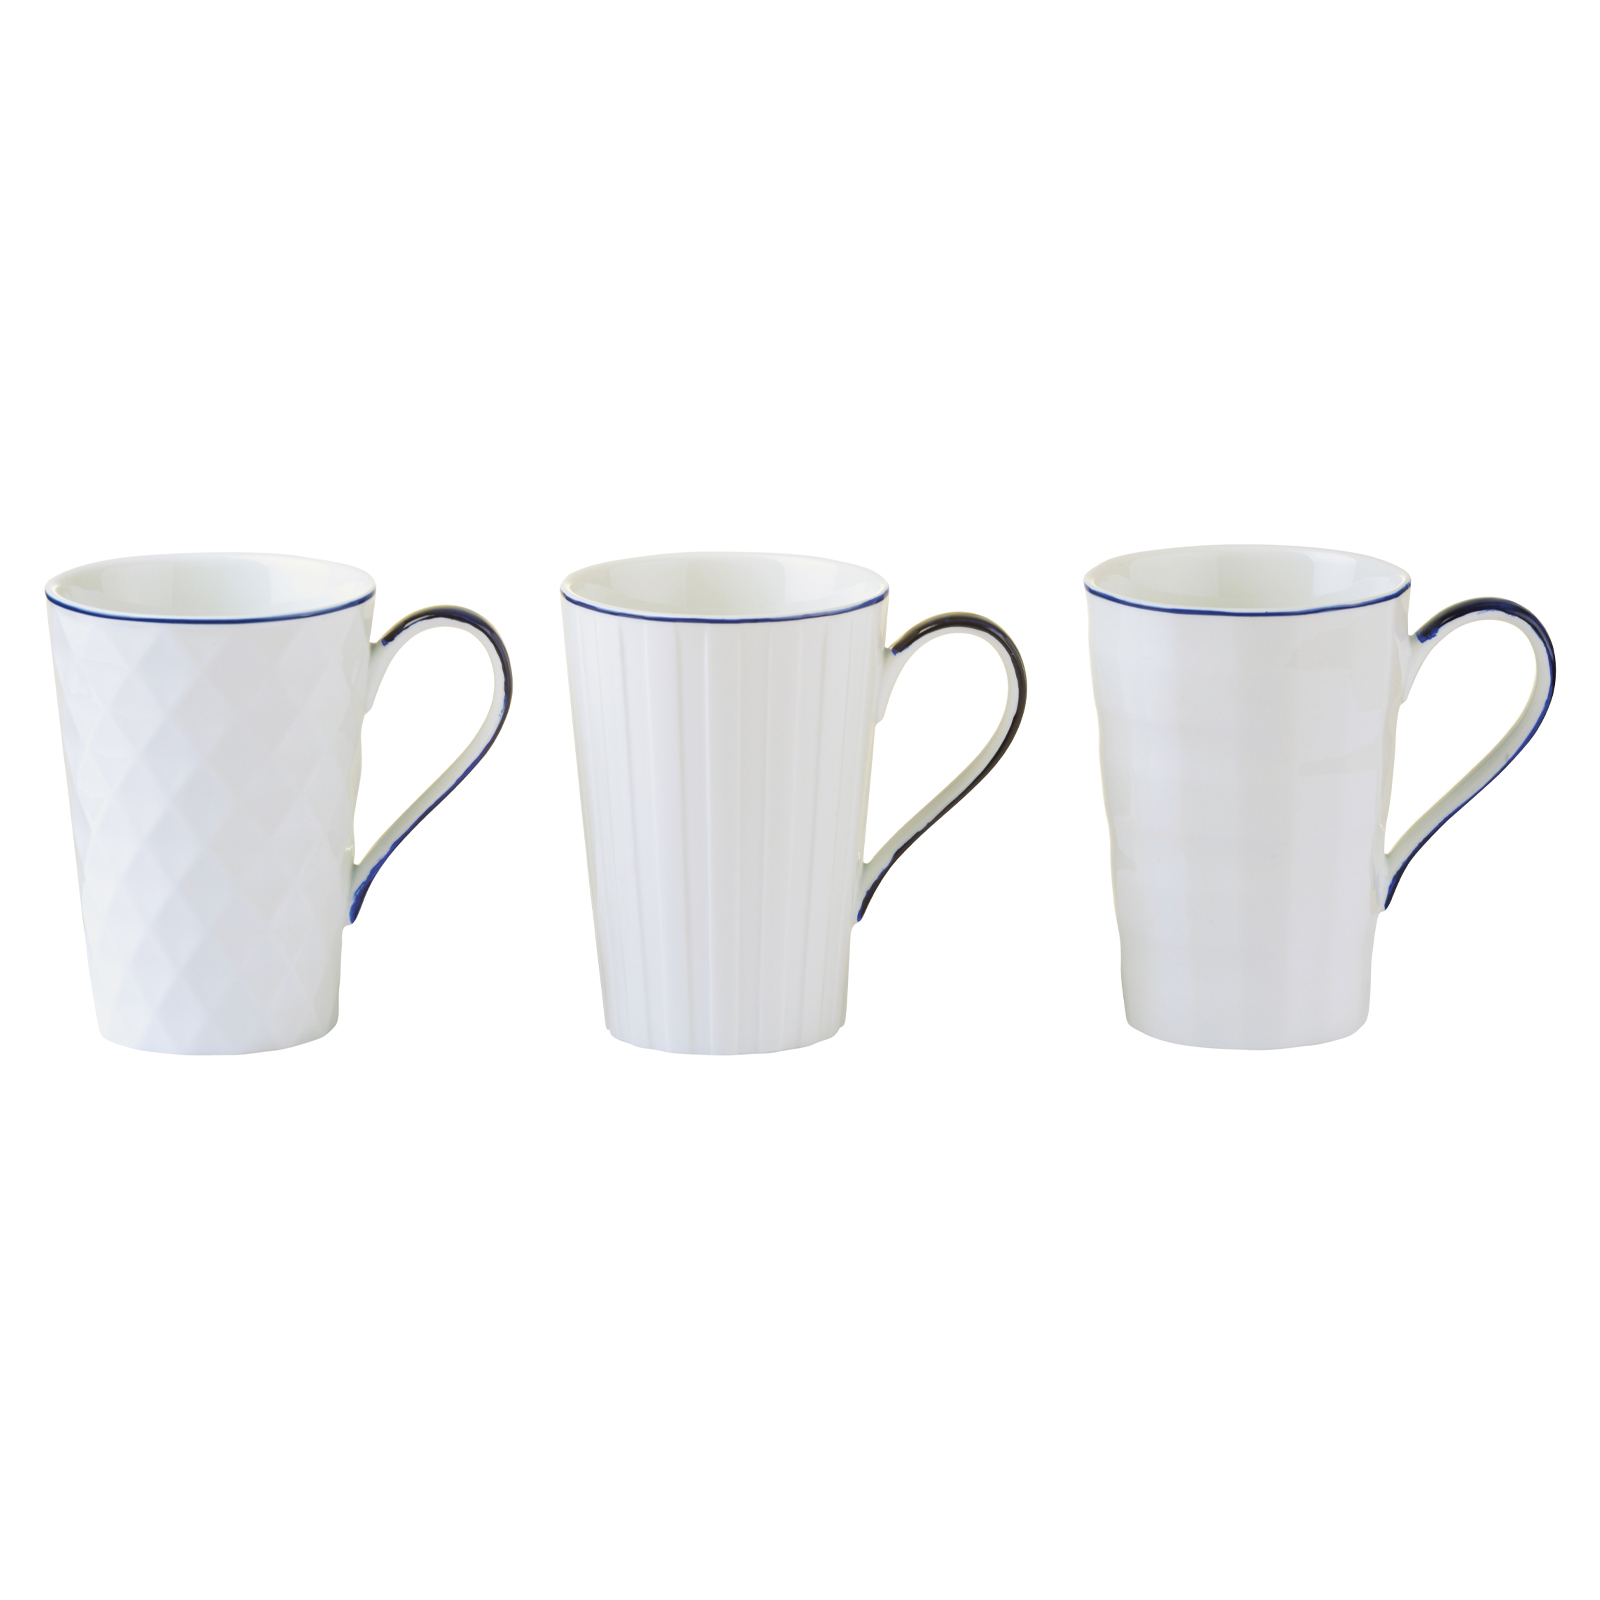 Lux Mugs blue by BIA